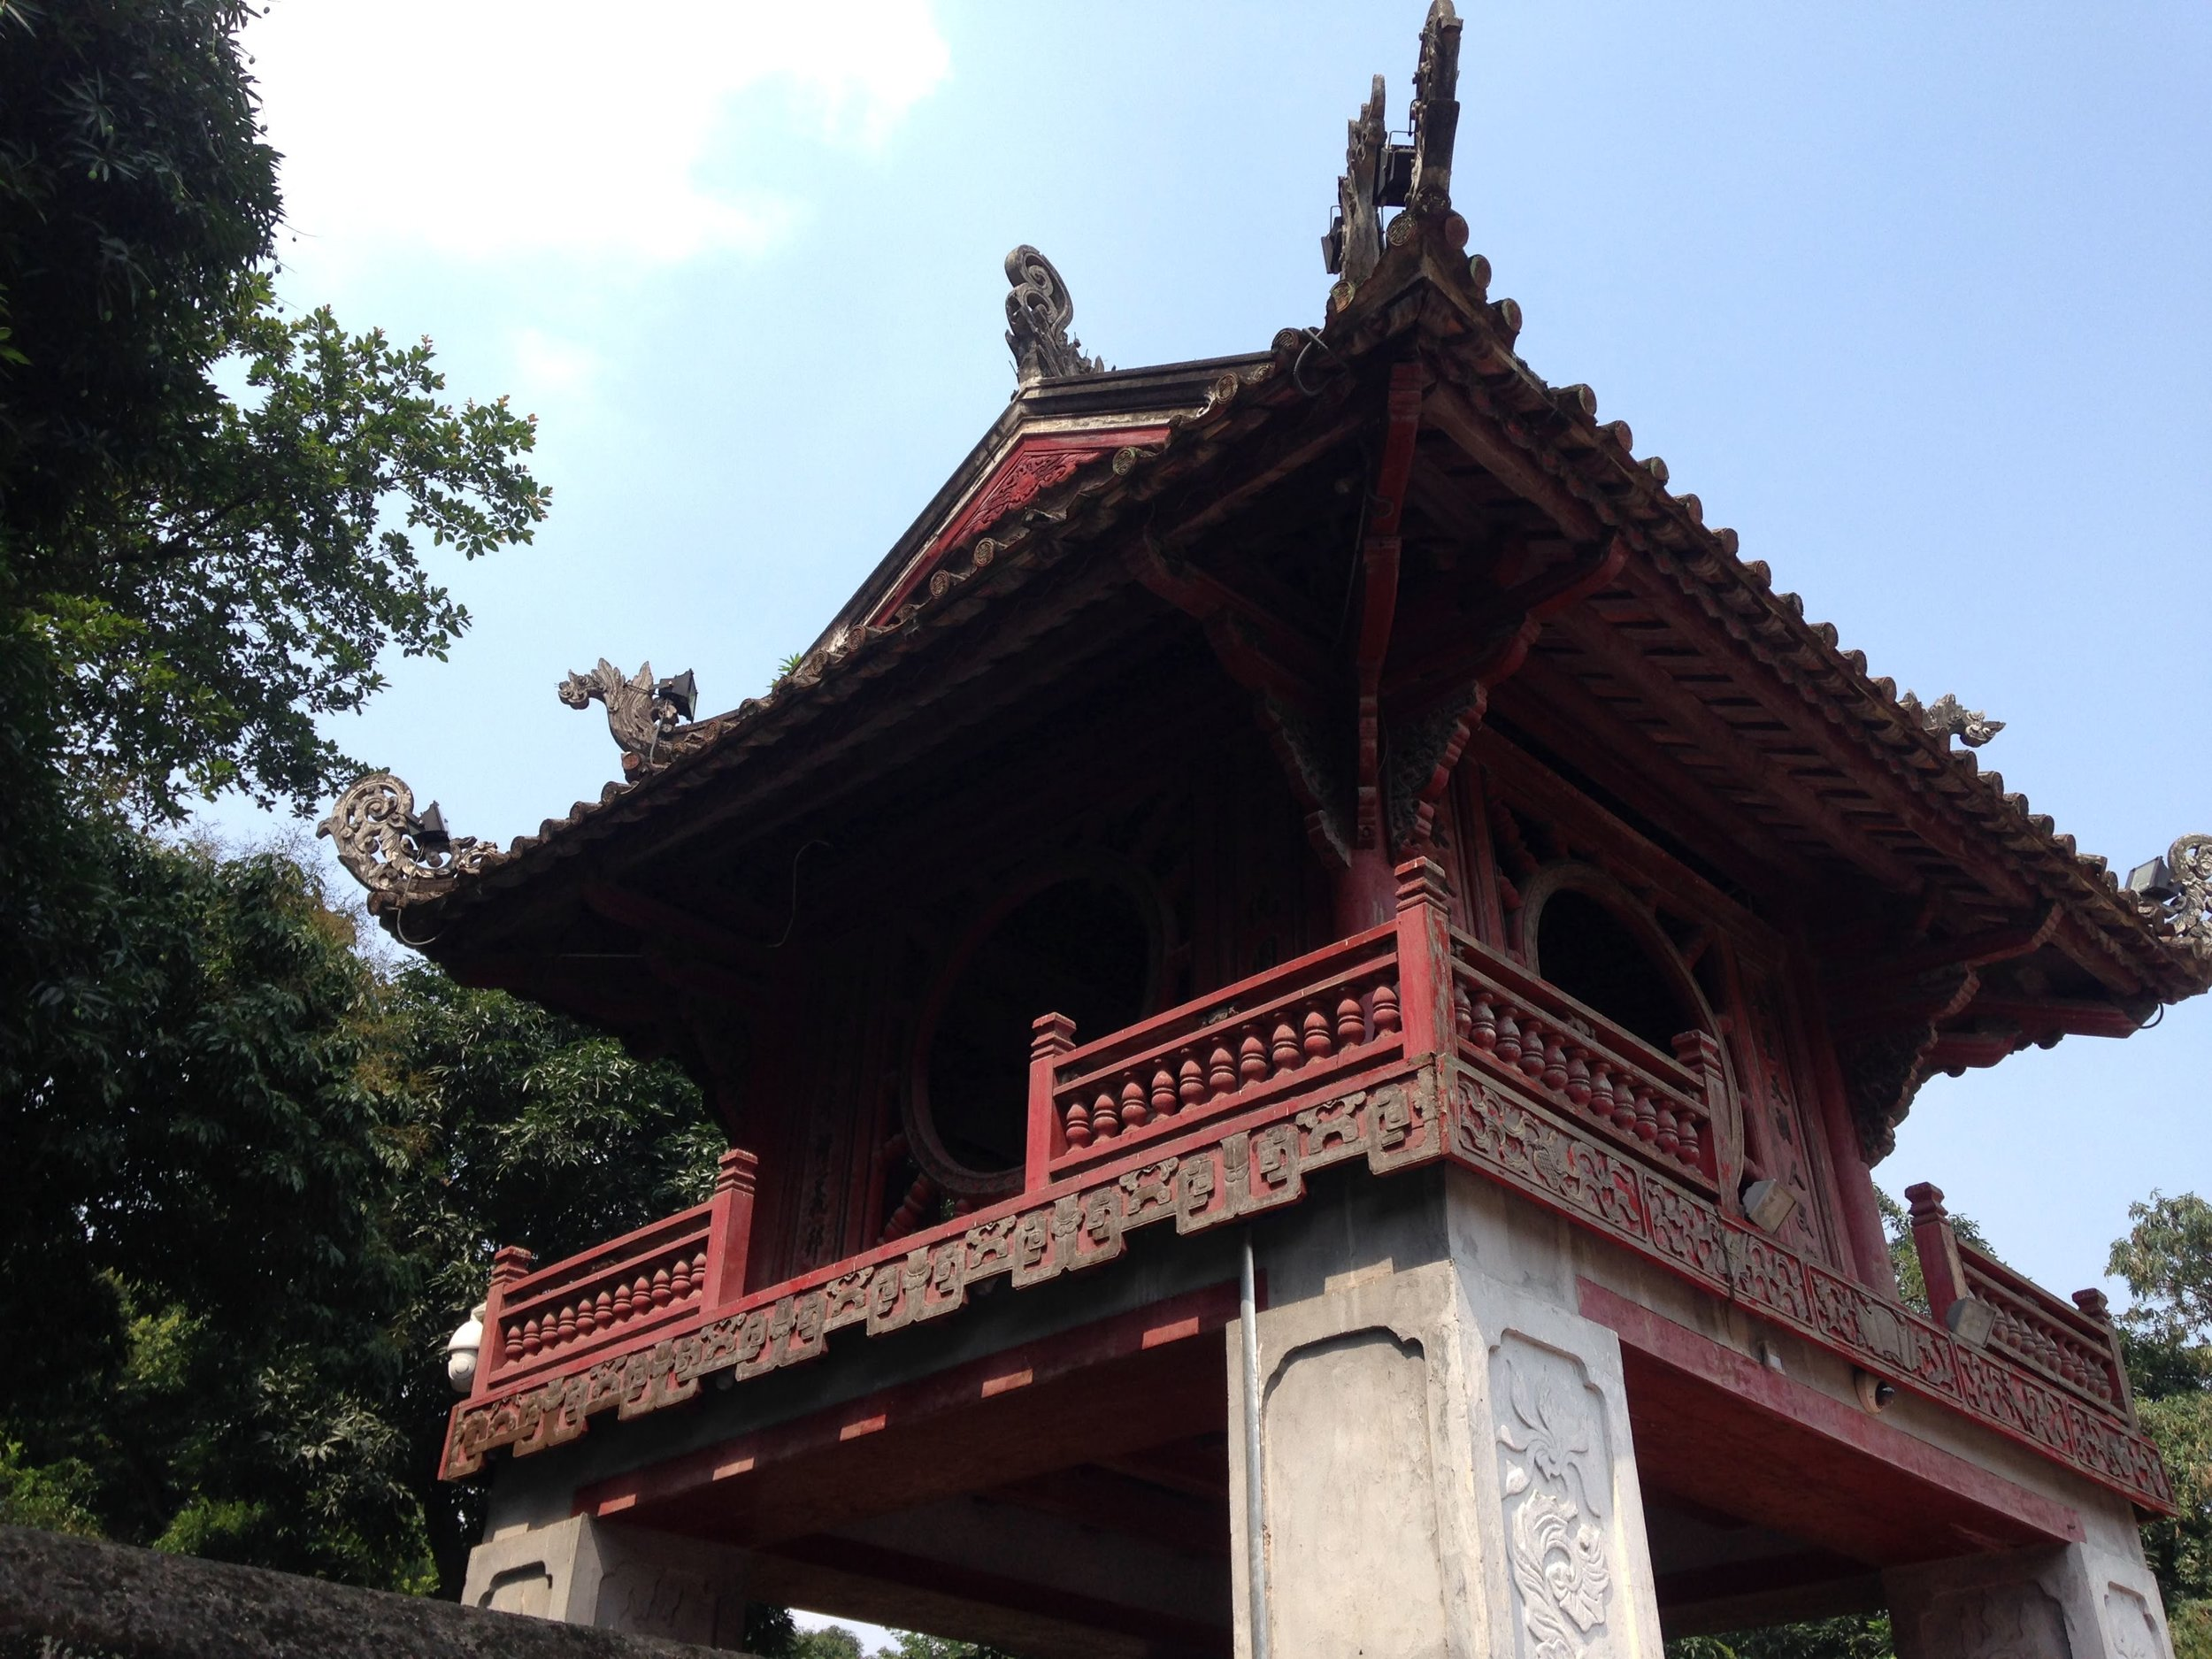 a gate tower at the Temple of Literature